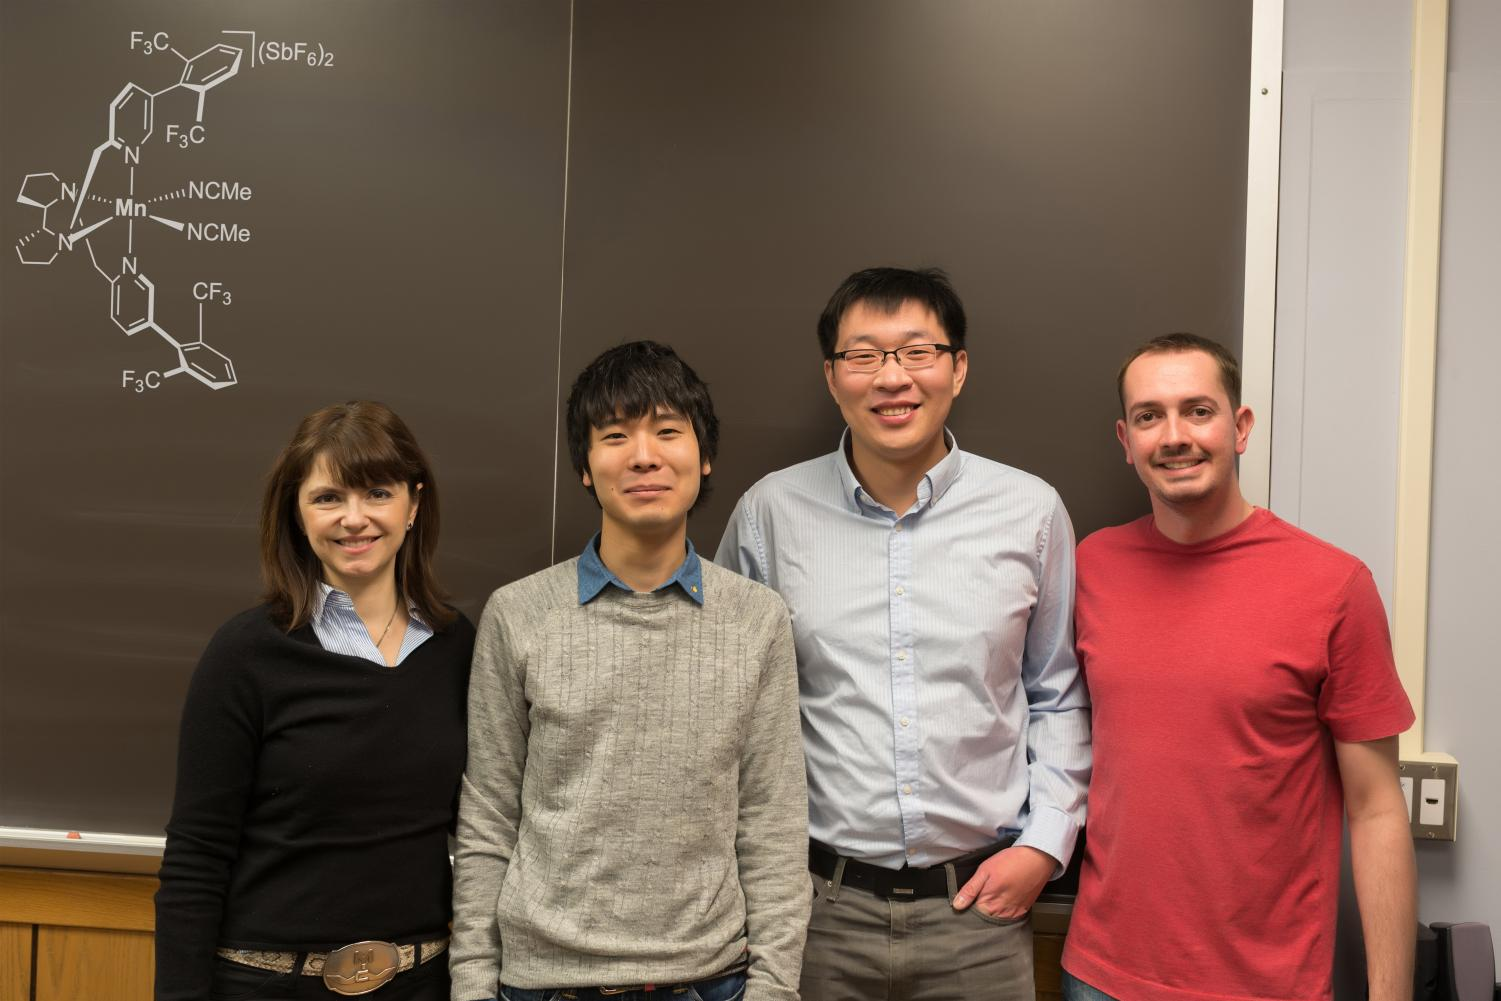 From left to right: Professor M. Christina White, Dr. Takeshi Nanjo, Jinpeng Zhao (lead author) and Dr. Emilio de Lucca Jr. The group has developed a catalyst that will change the future of medicine and pharmaceuticals.